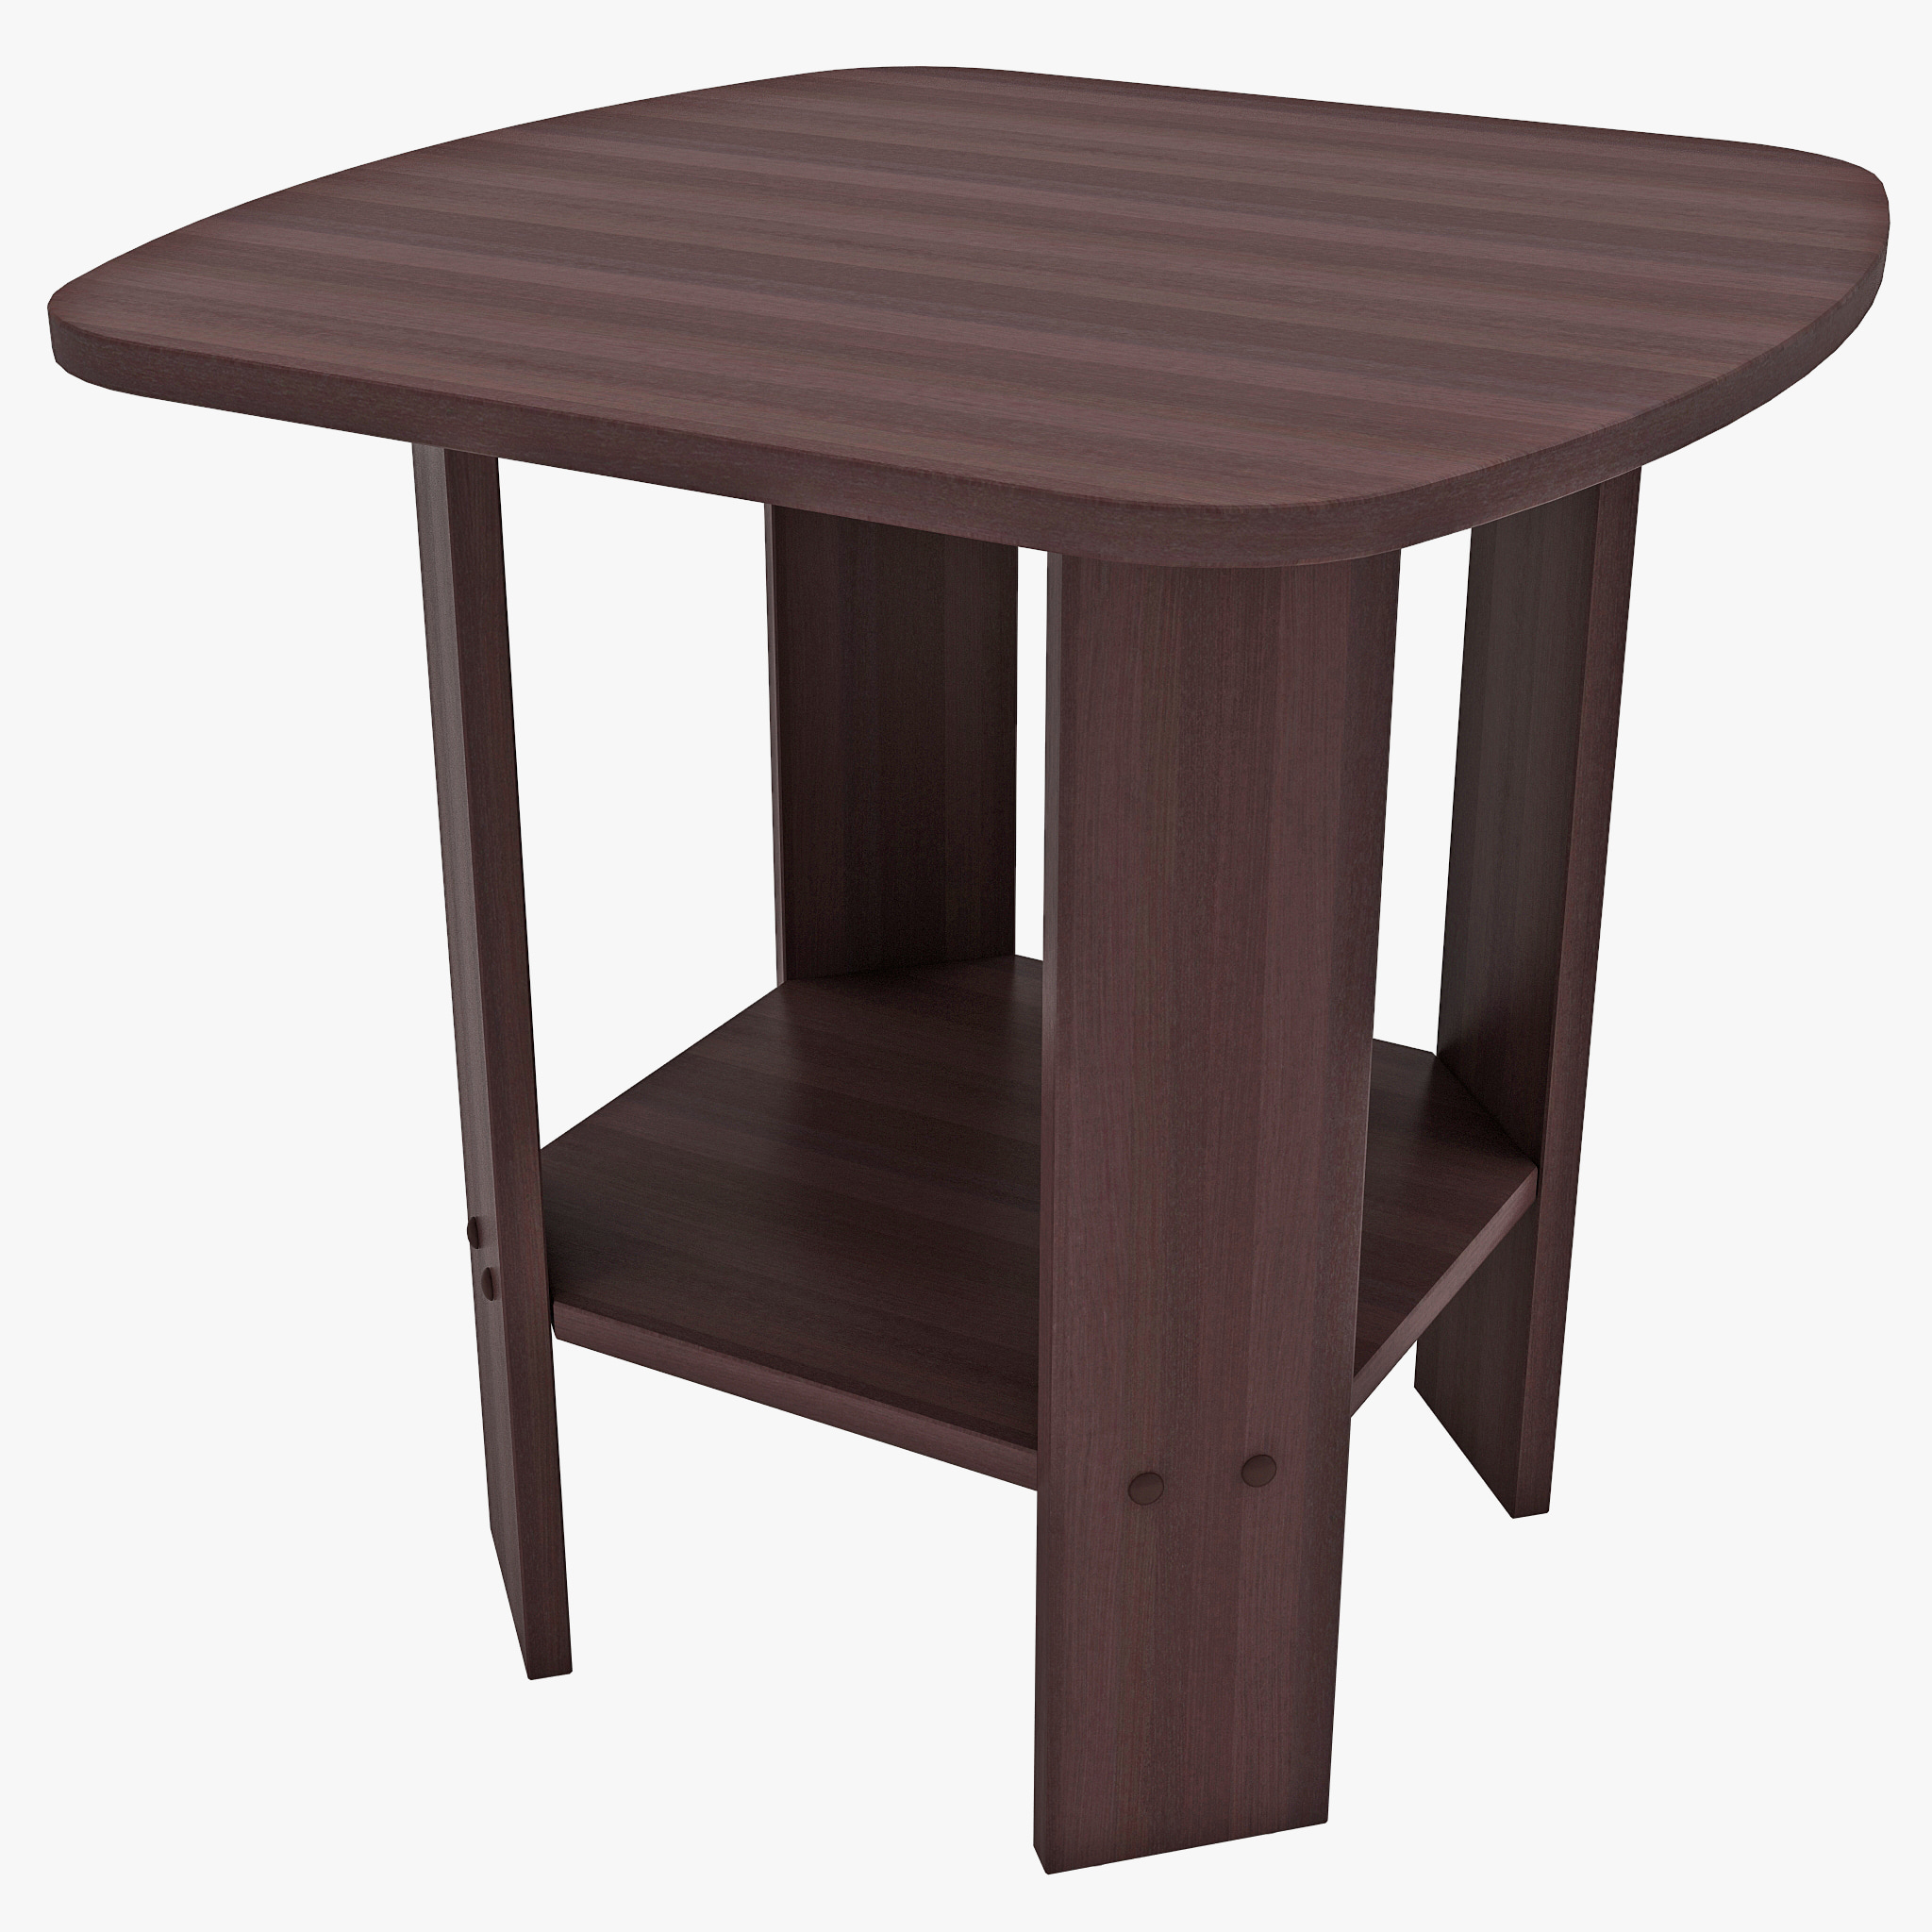 3d model furinno end table for Table 3d model